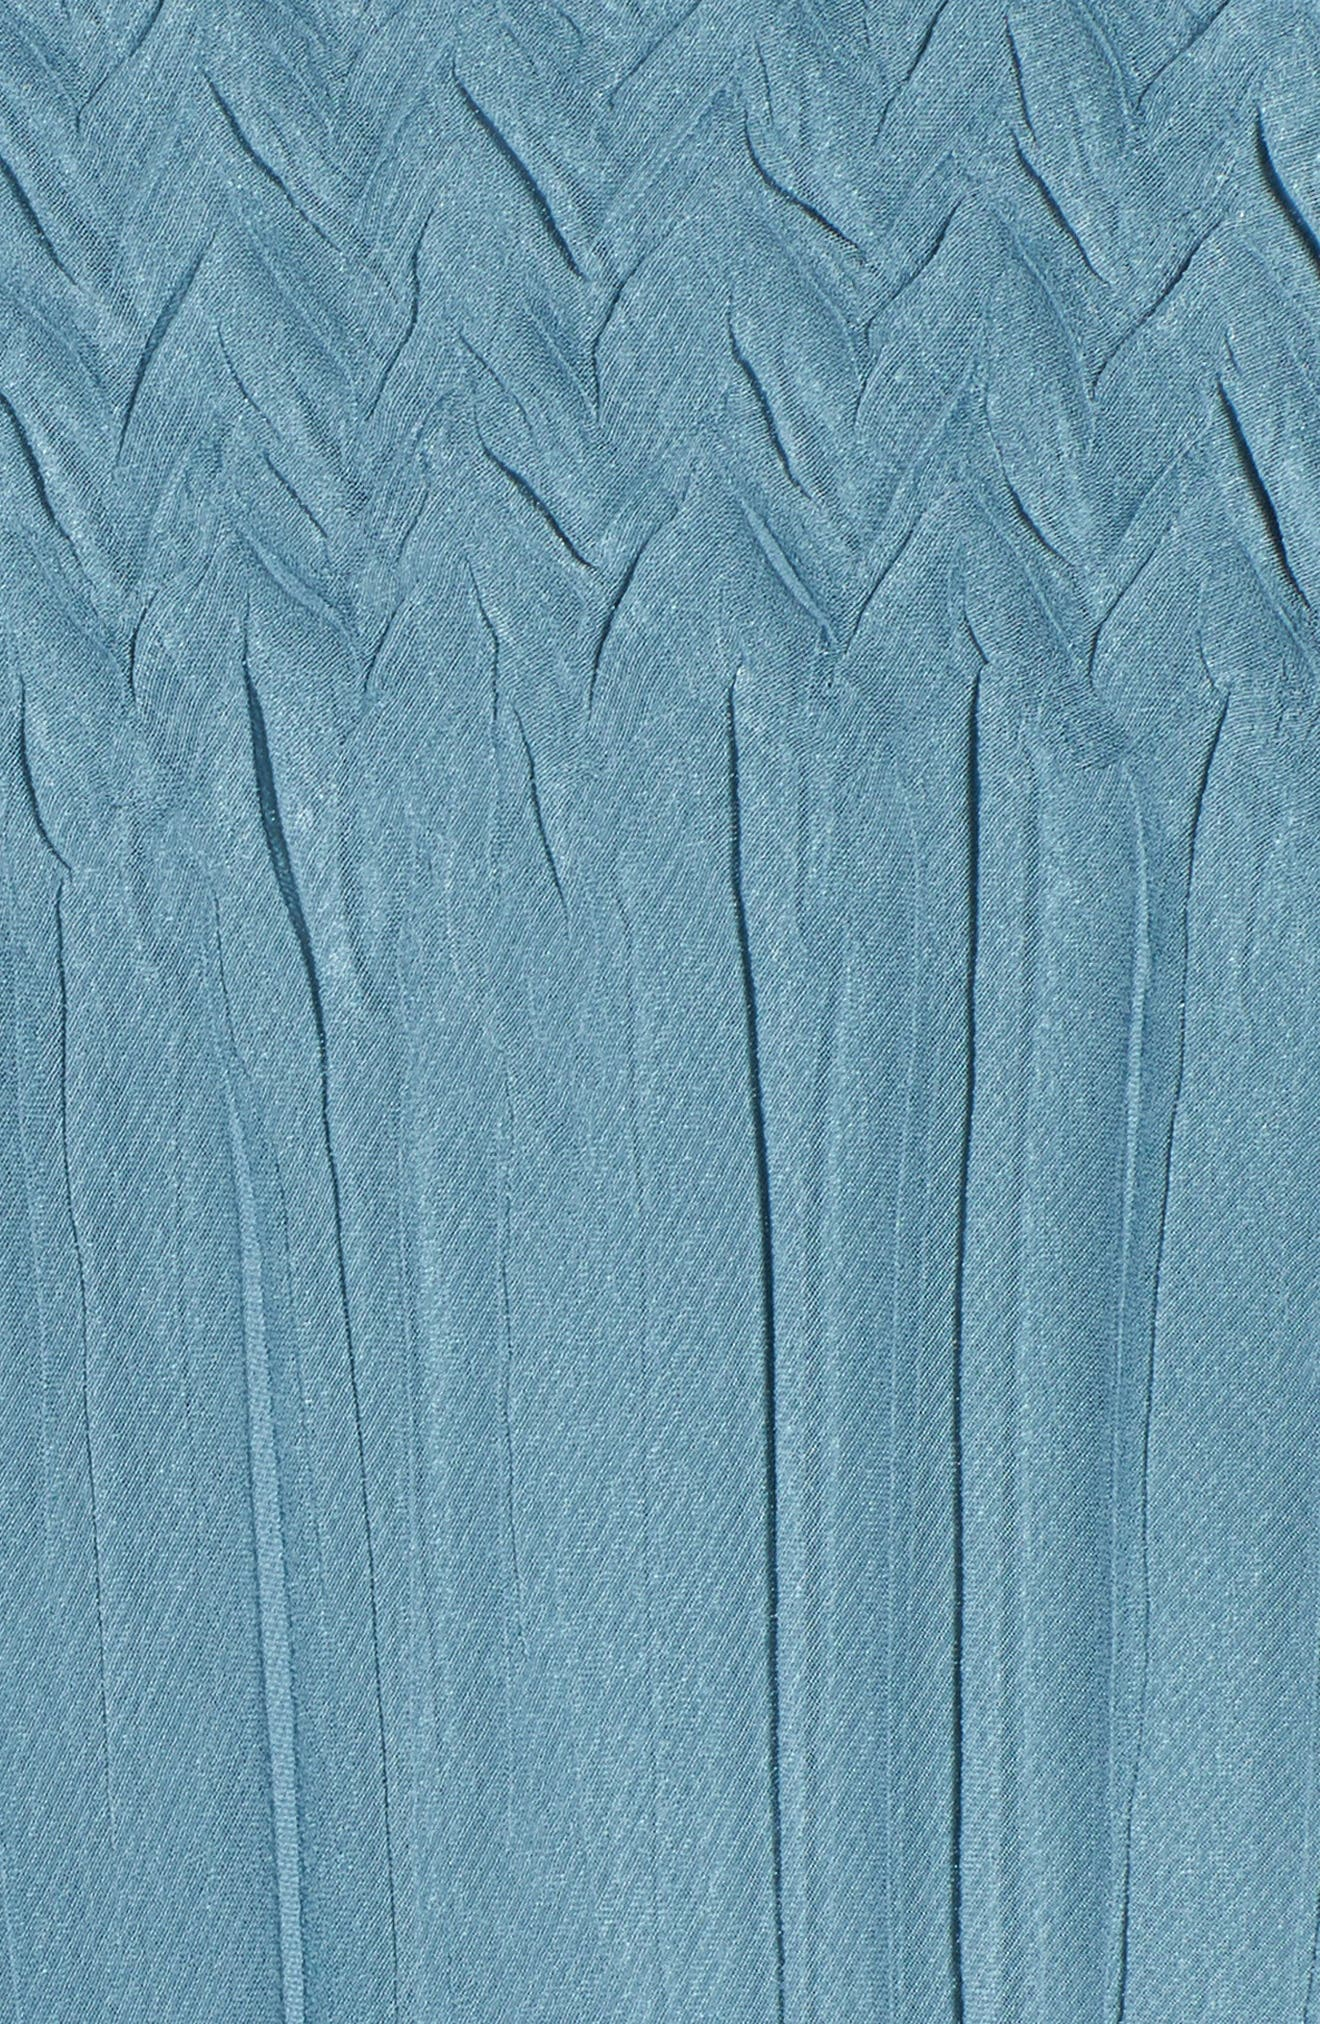 Bead Trim Tiered Chiffon Dress,                             Alternate thumbnail 5, color,                             Silver Blue Night Ombre